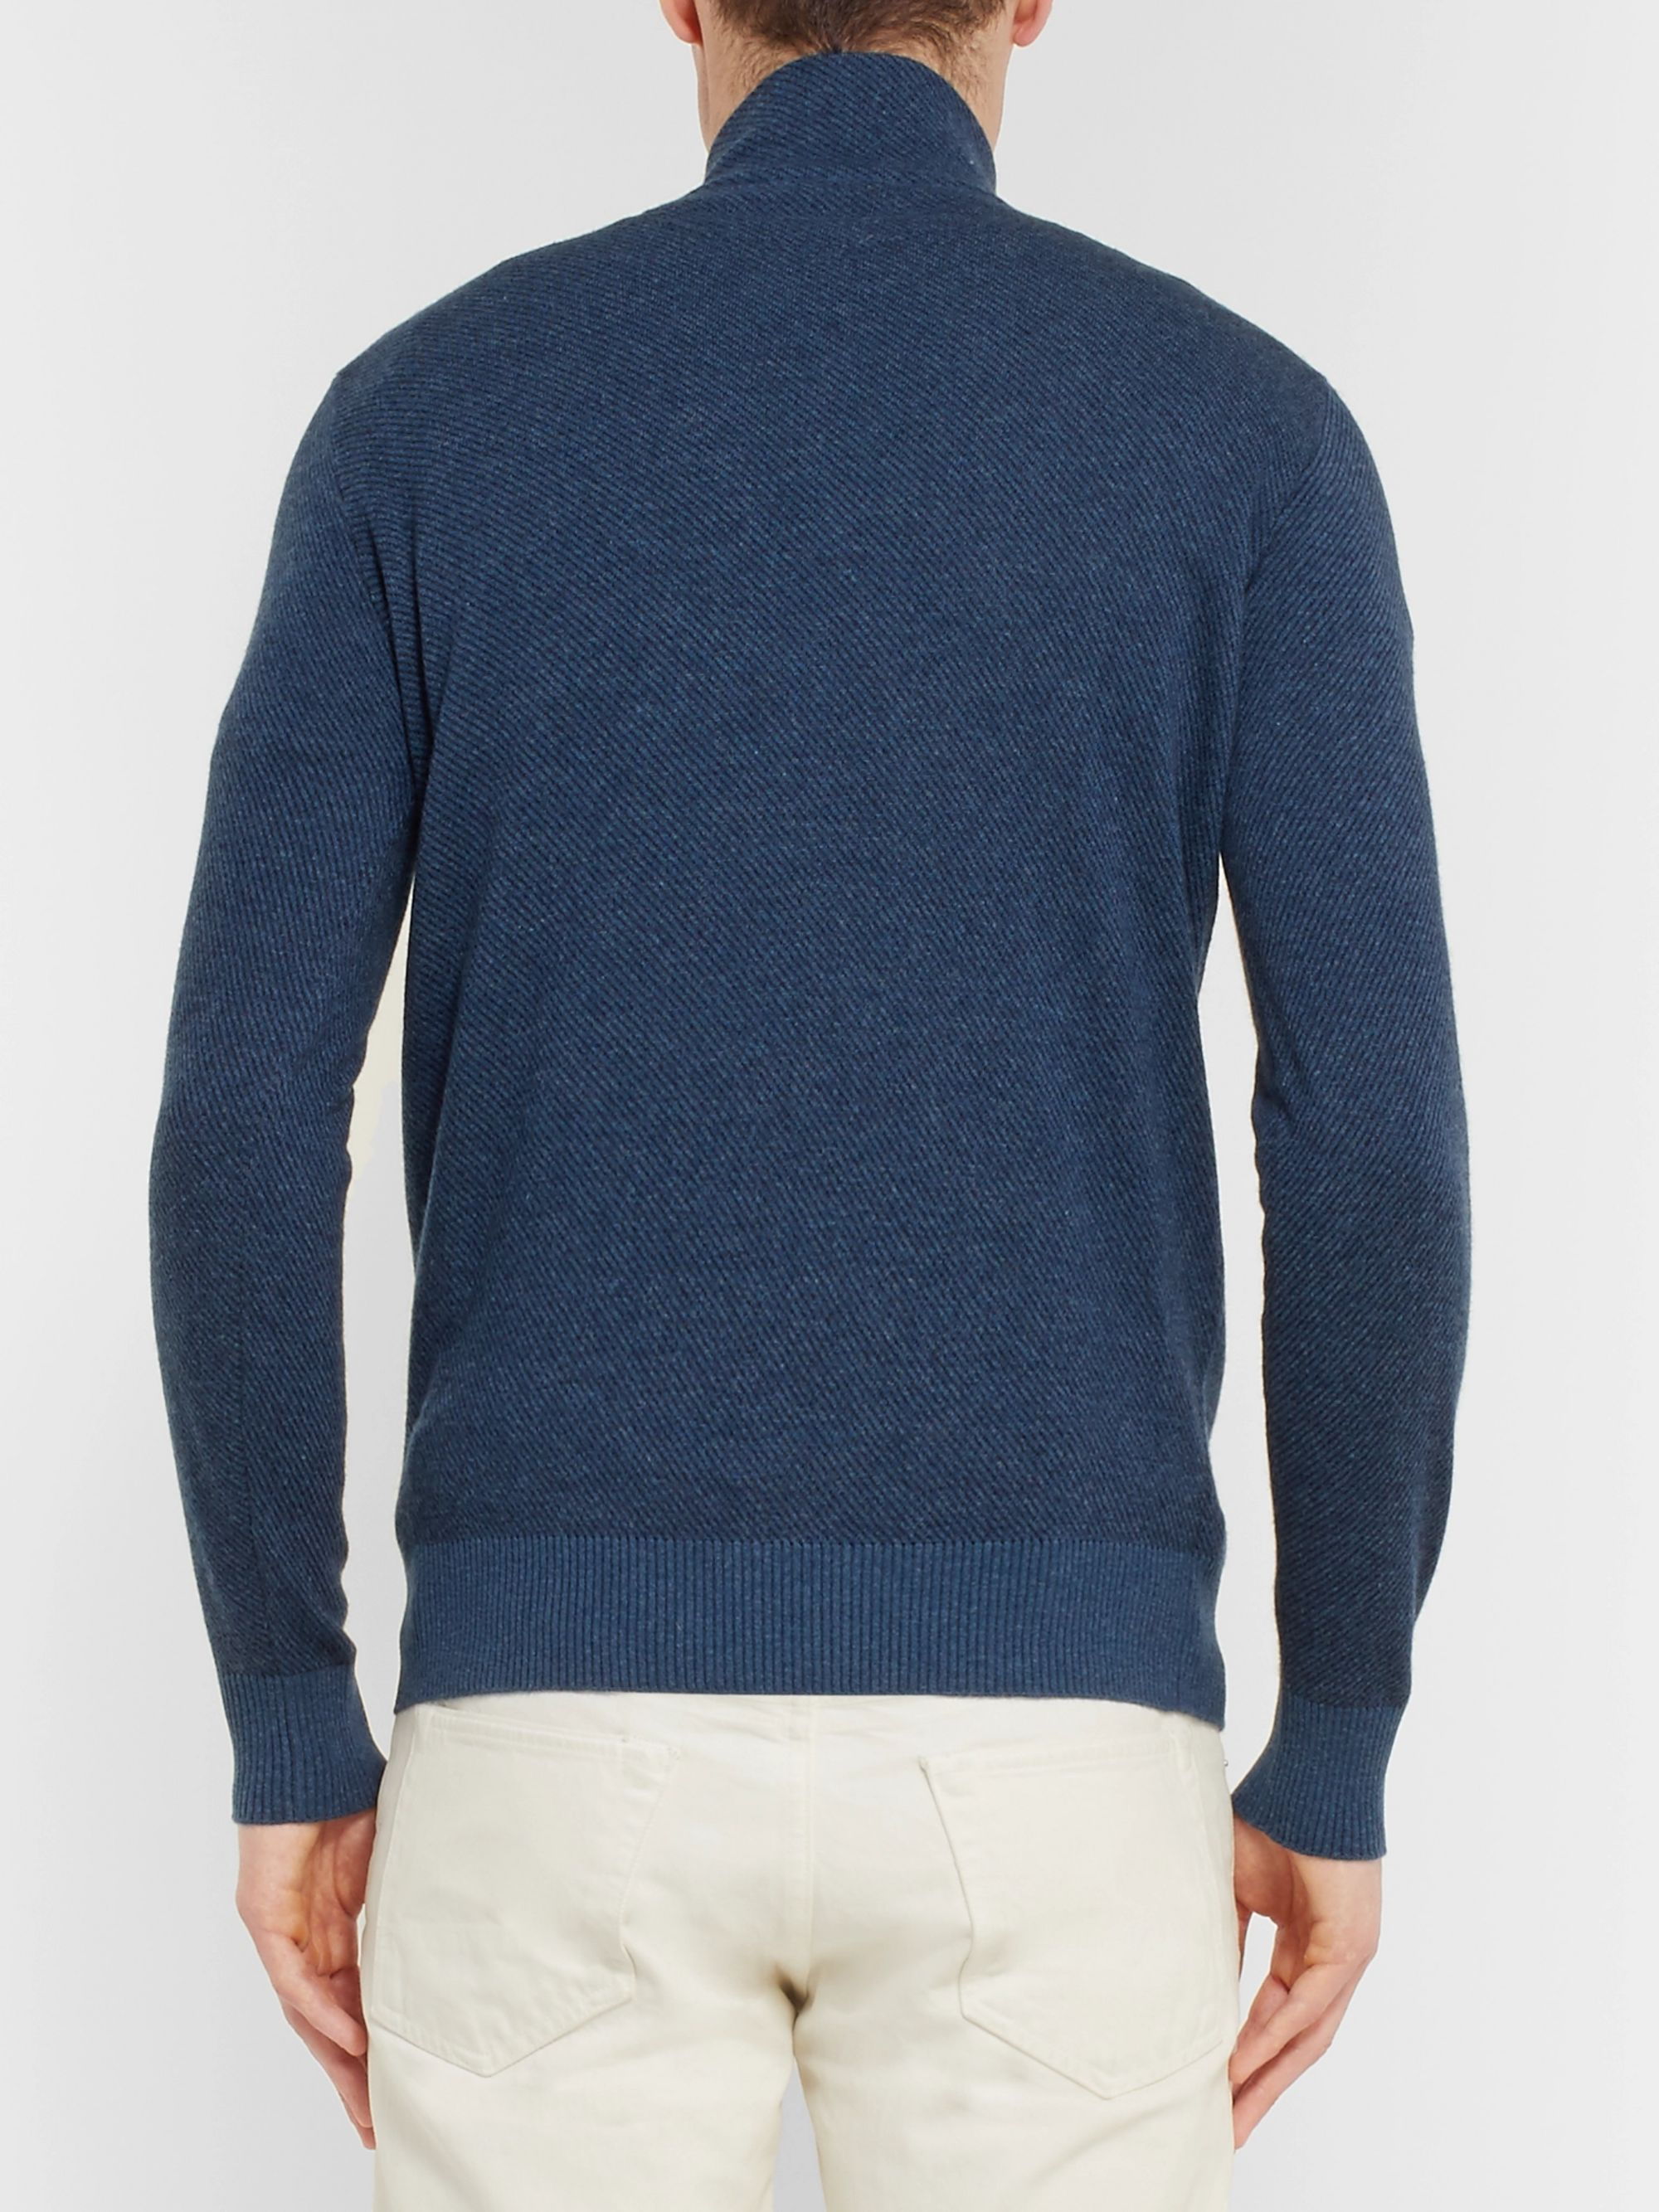 Loro Piana Roadster Cashmere Half-Zip Sweater